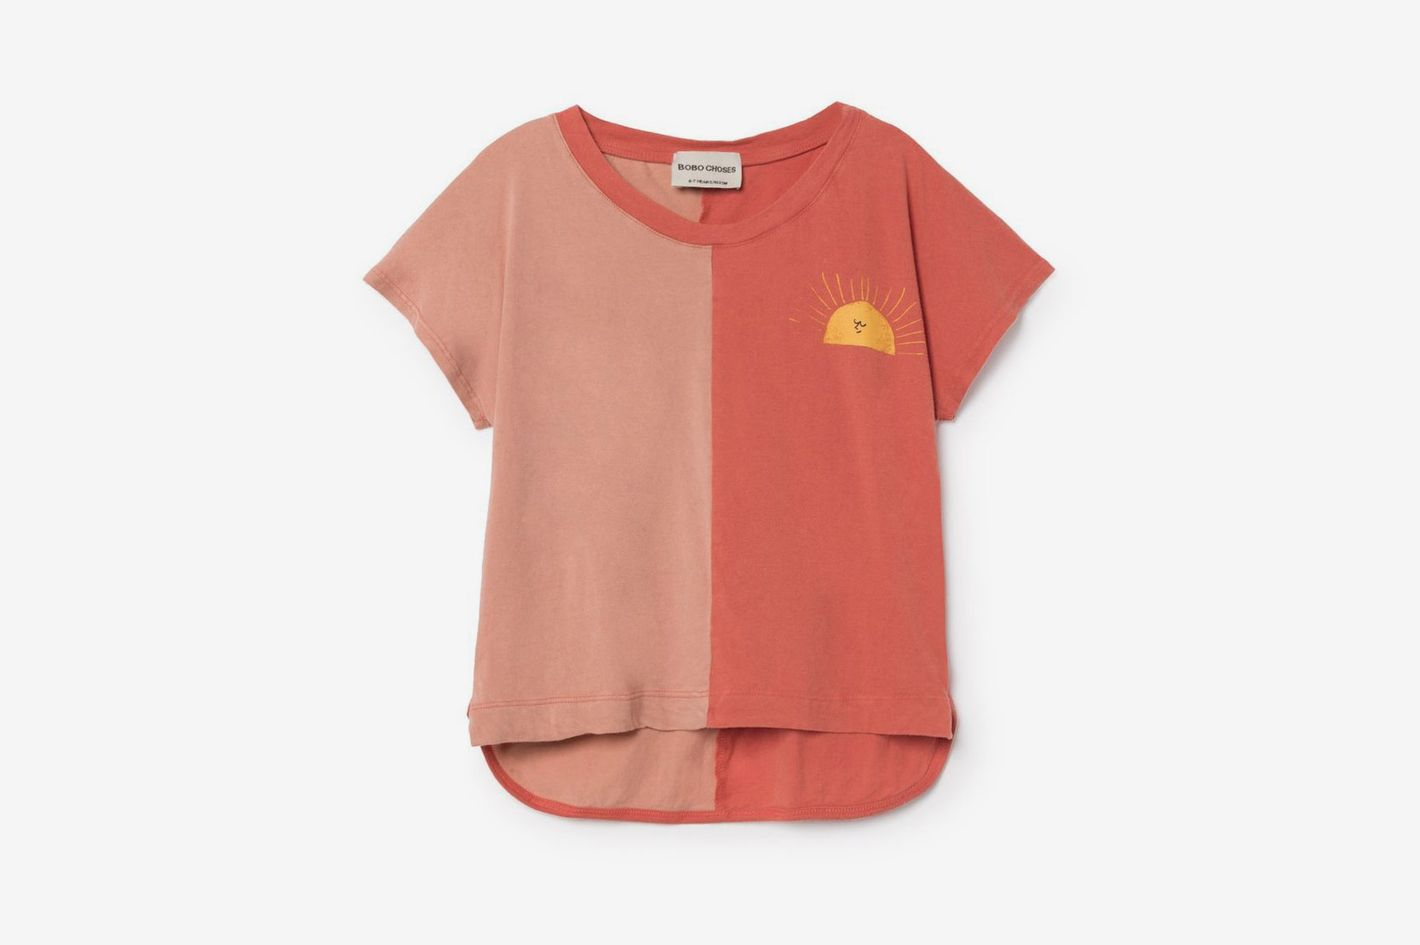 1ac339ce7 15 Best Kids' T-Shirts, According to Stylish Parents: 2018